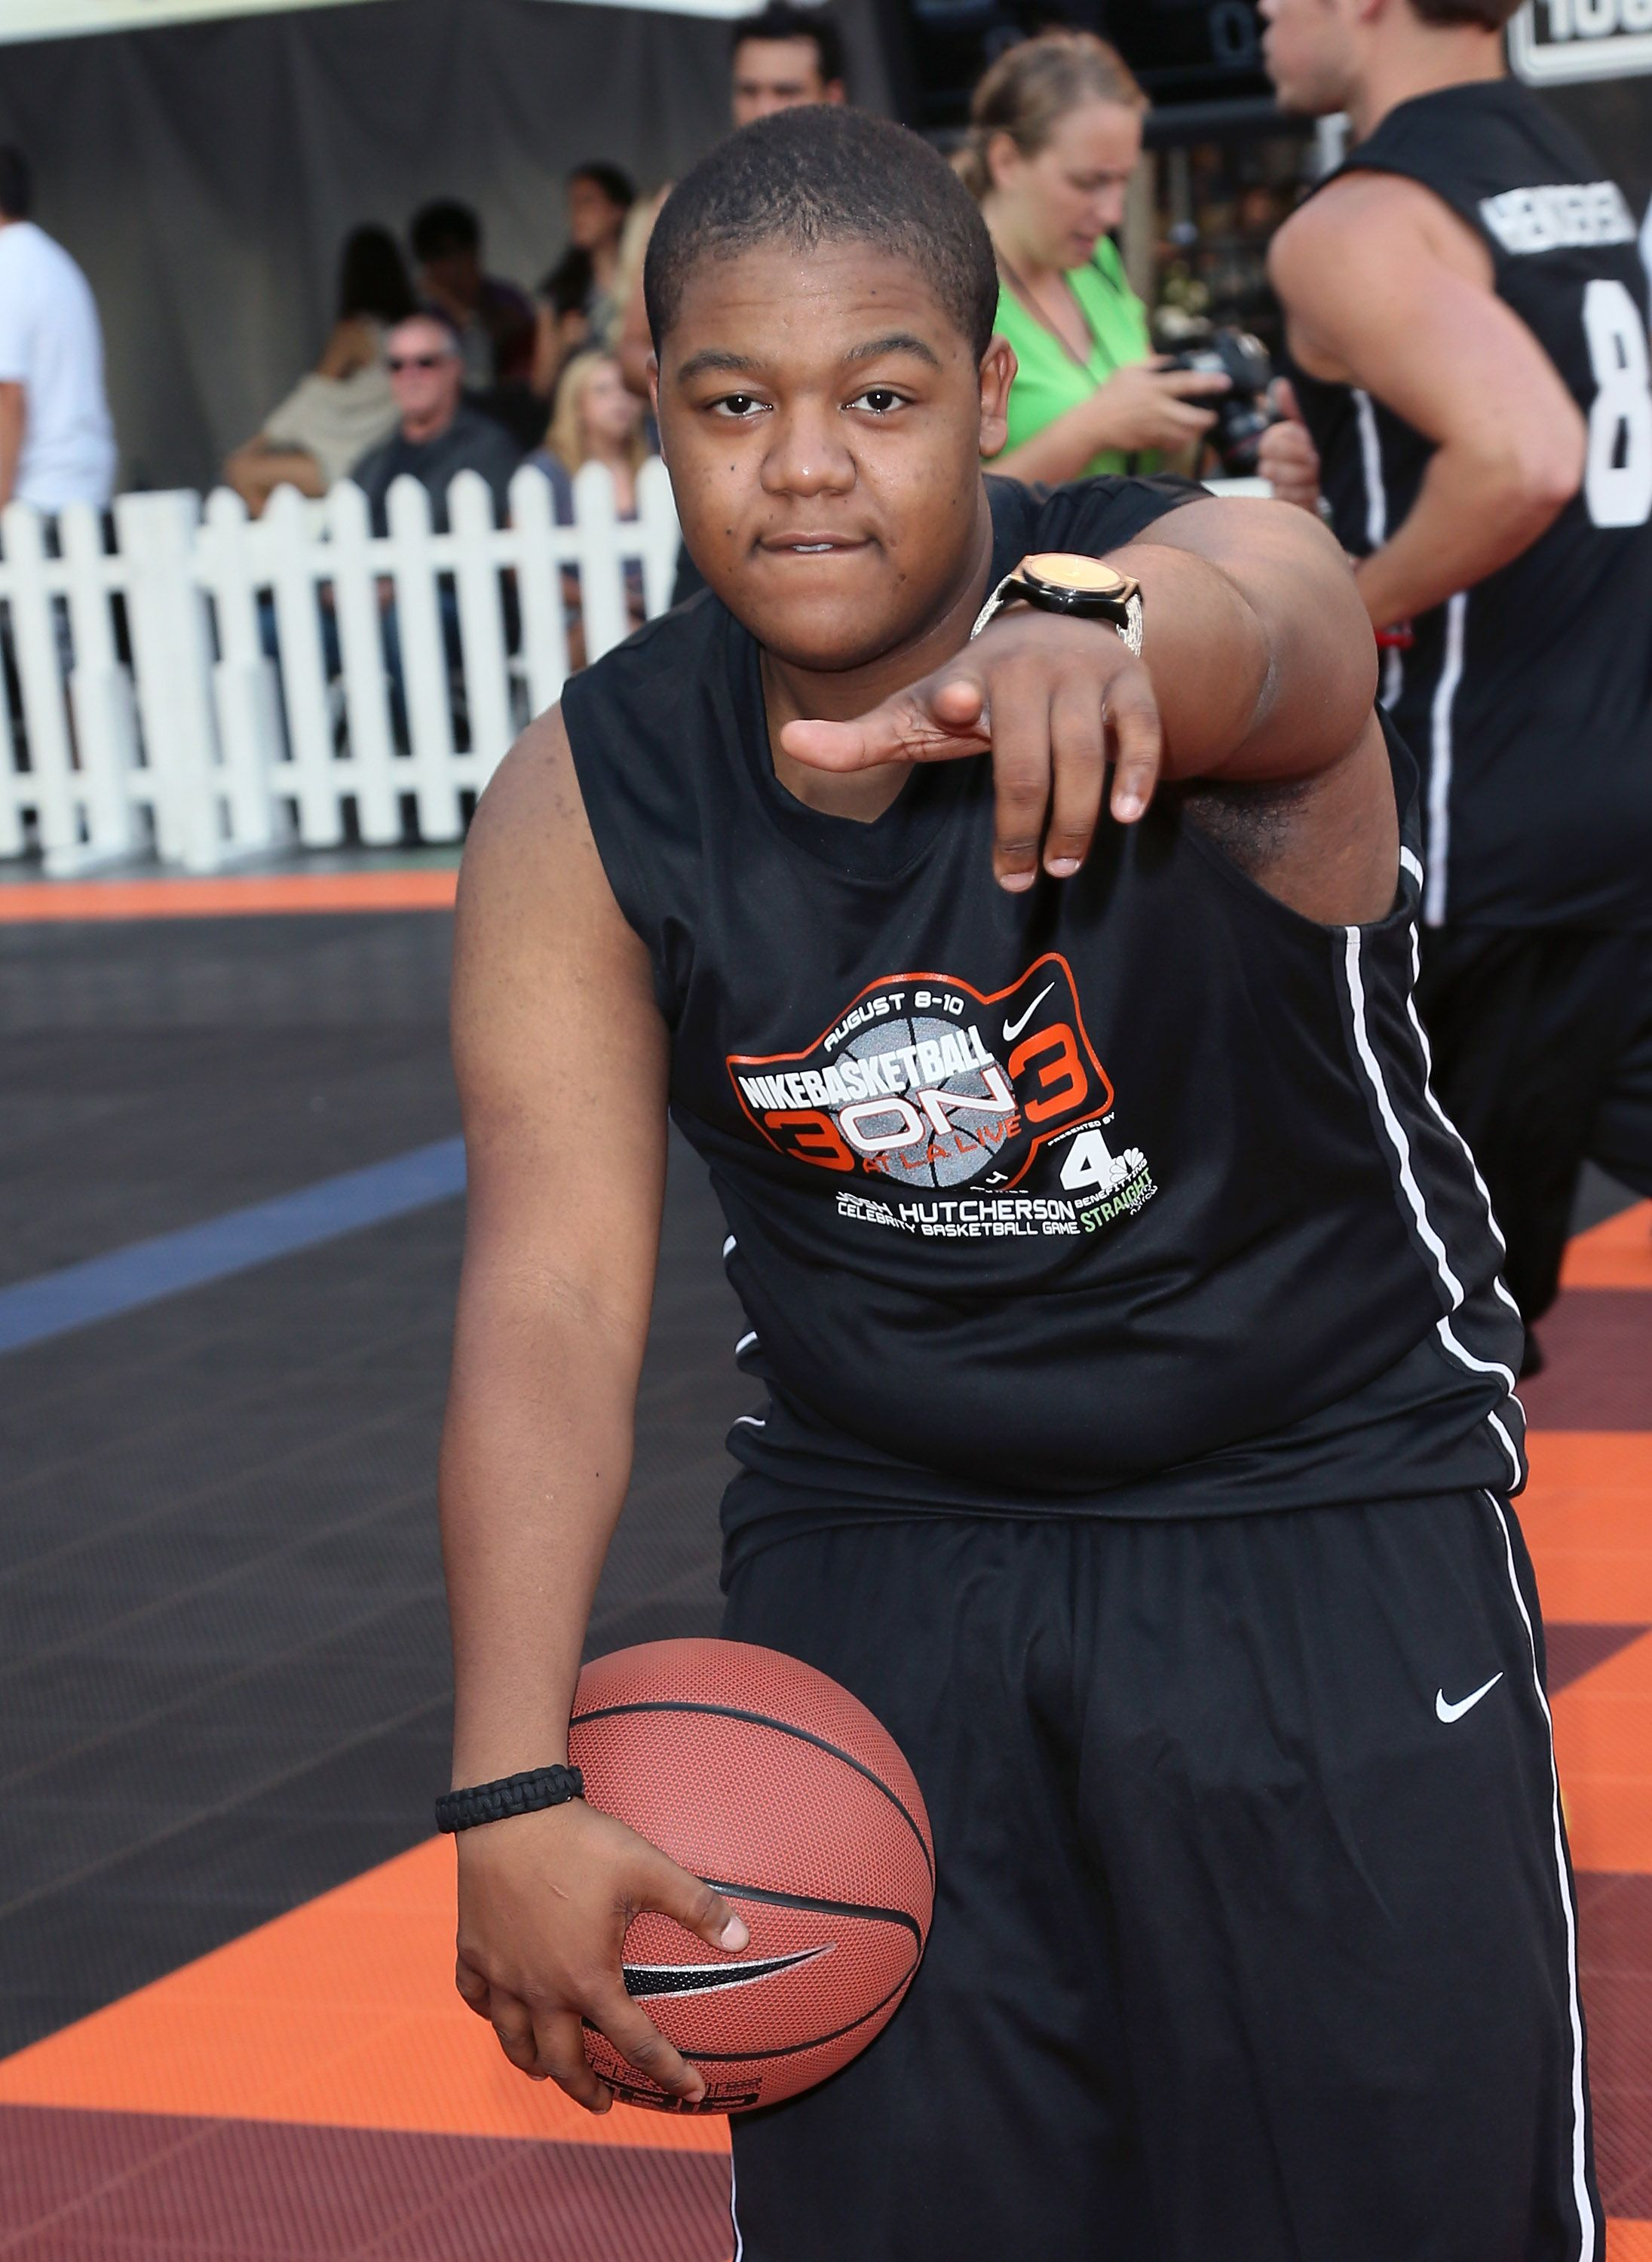 Kyle Massey attends the 3rd Annual Josh Hutcherson Celebrity Basketball Game at Nokia Plaza L.A. LIVE on August 8, 2014 in Los Angeles, California. | Source: Getty Images